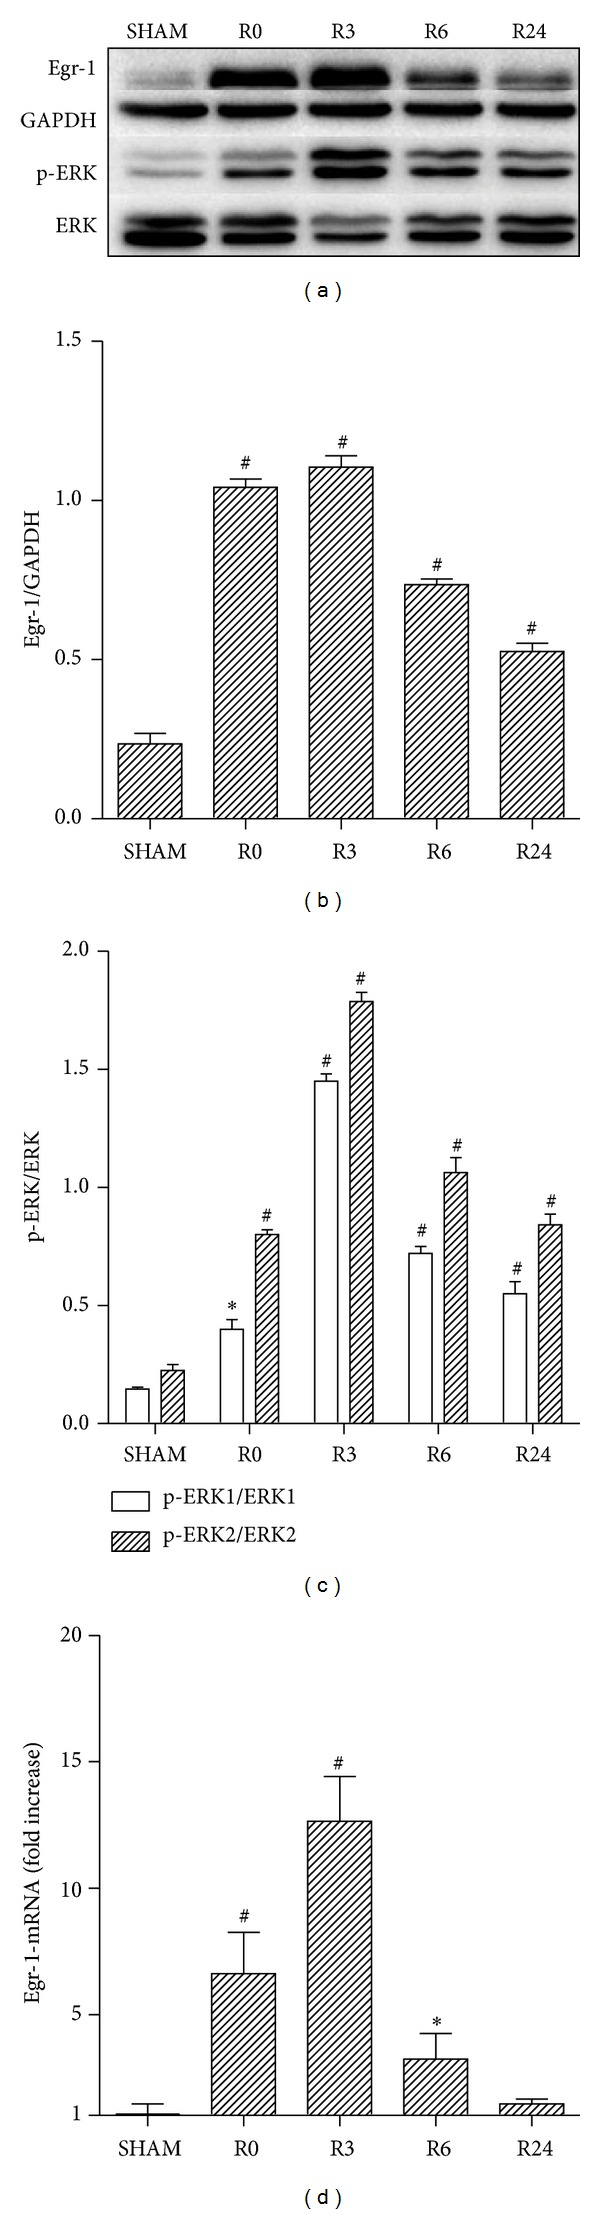 Comparison of the myocardial Egr-1and p-ERK1/2 expression at different time points after I/R. The protein levels of Egr-1and p-ERK1/2 at varying reperfusion time points (R0, R3, R6, and R24) were determined by western blot (a) and the corresponding densitometric analysis is shown in (b, c). Besides, the mRNA levels of Egr-1 were measured by qRT-PCR with data presented as relative fold increase versus sham control (d). For Egr-1 and p-ERK1/2, nearly all time points exhibit significant increase comparing with sham controls and peak levels are observed at R3 time point ( P